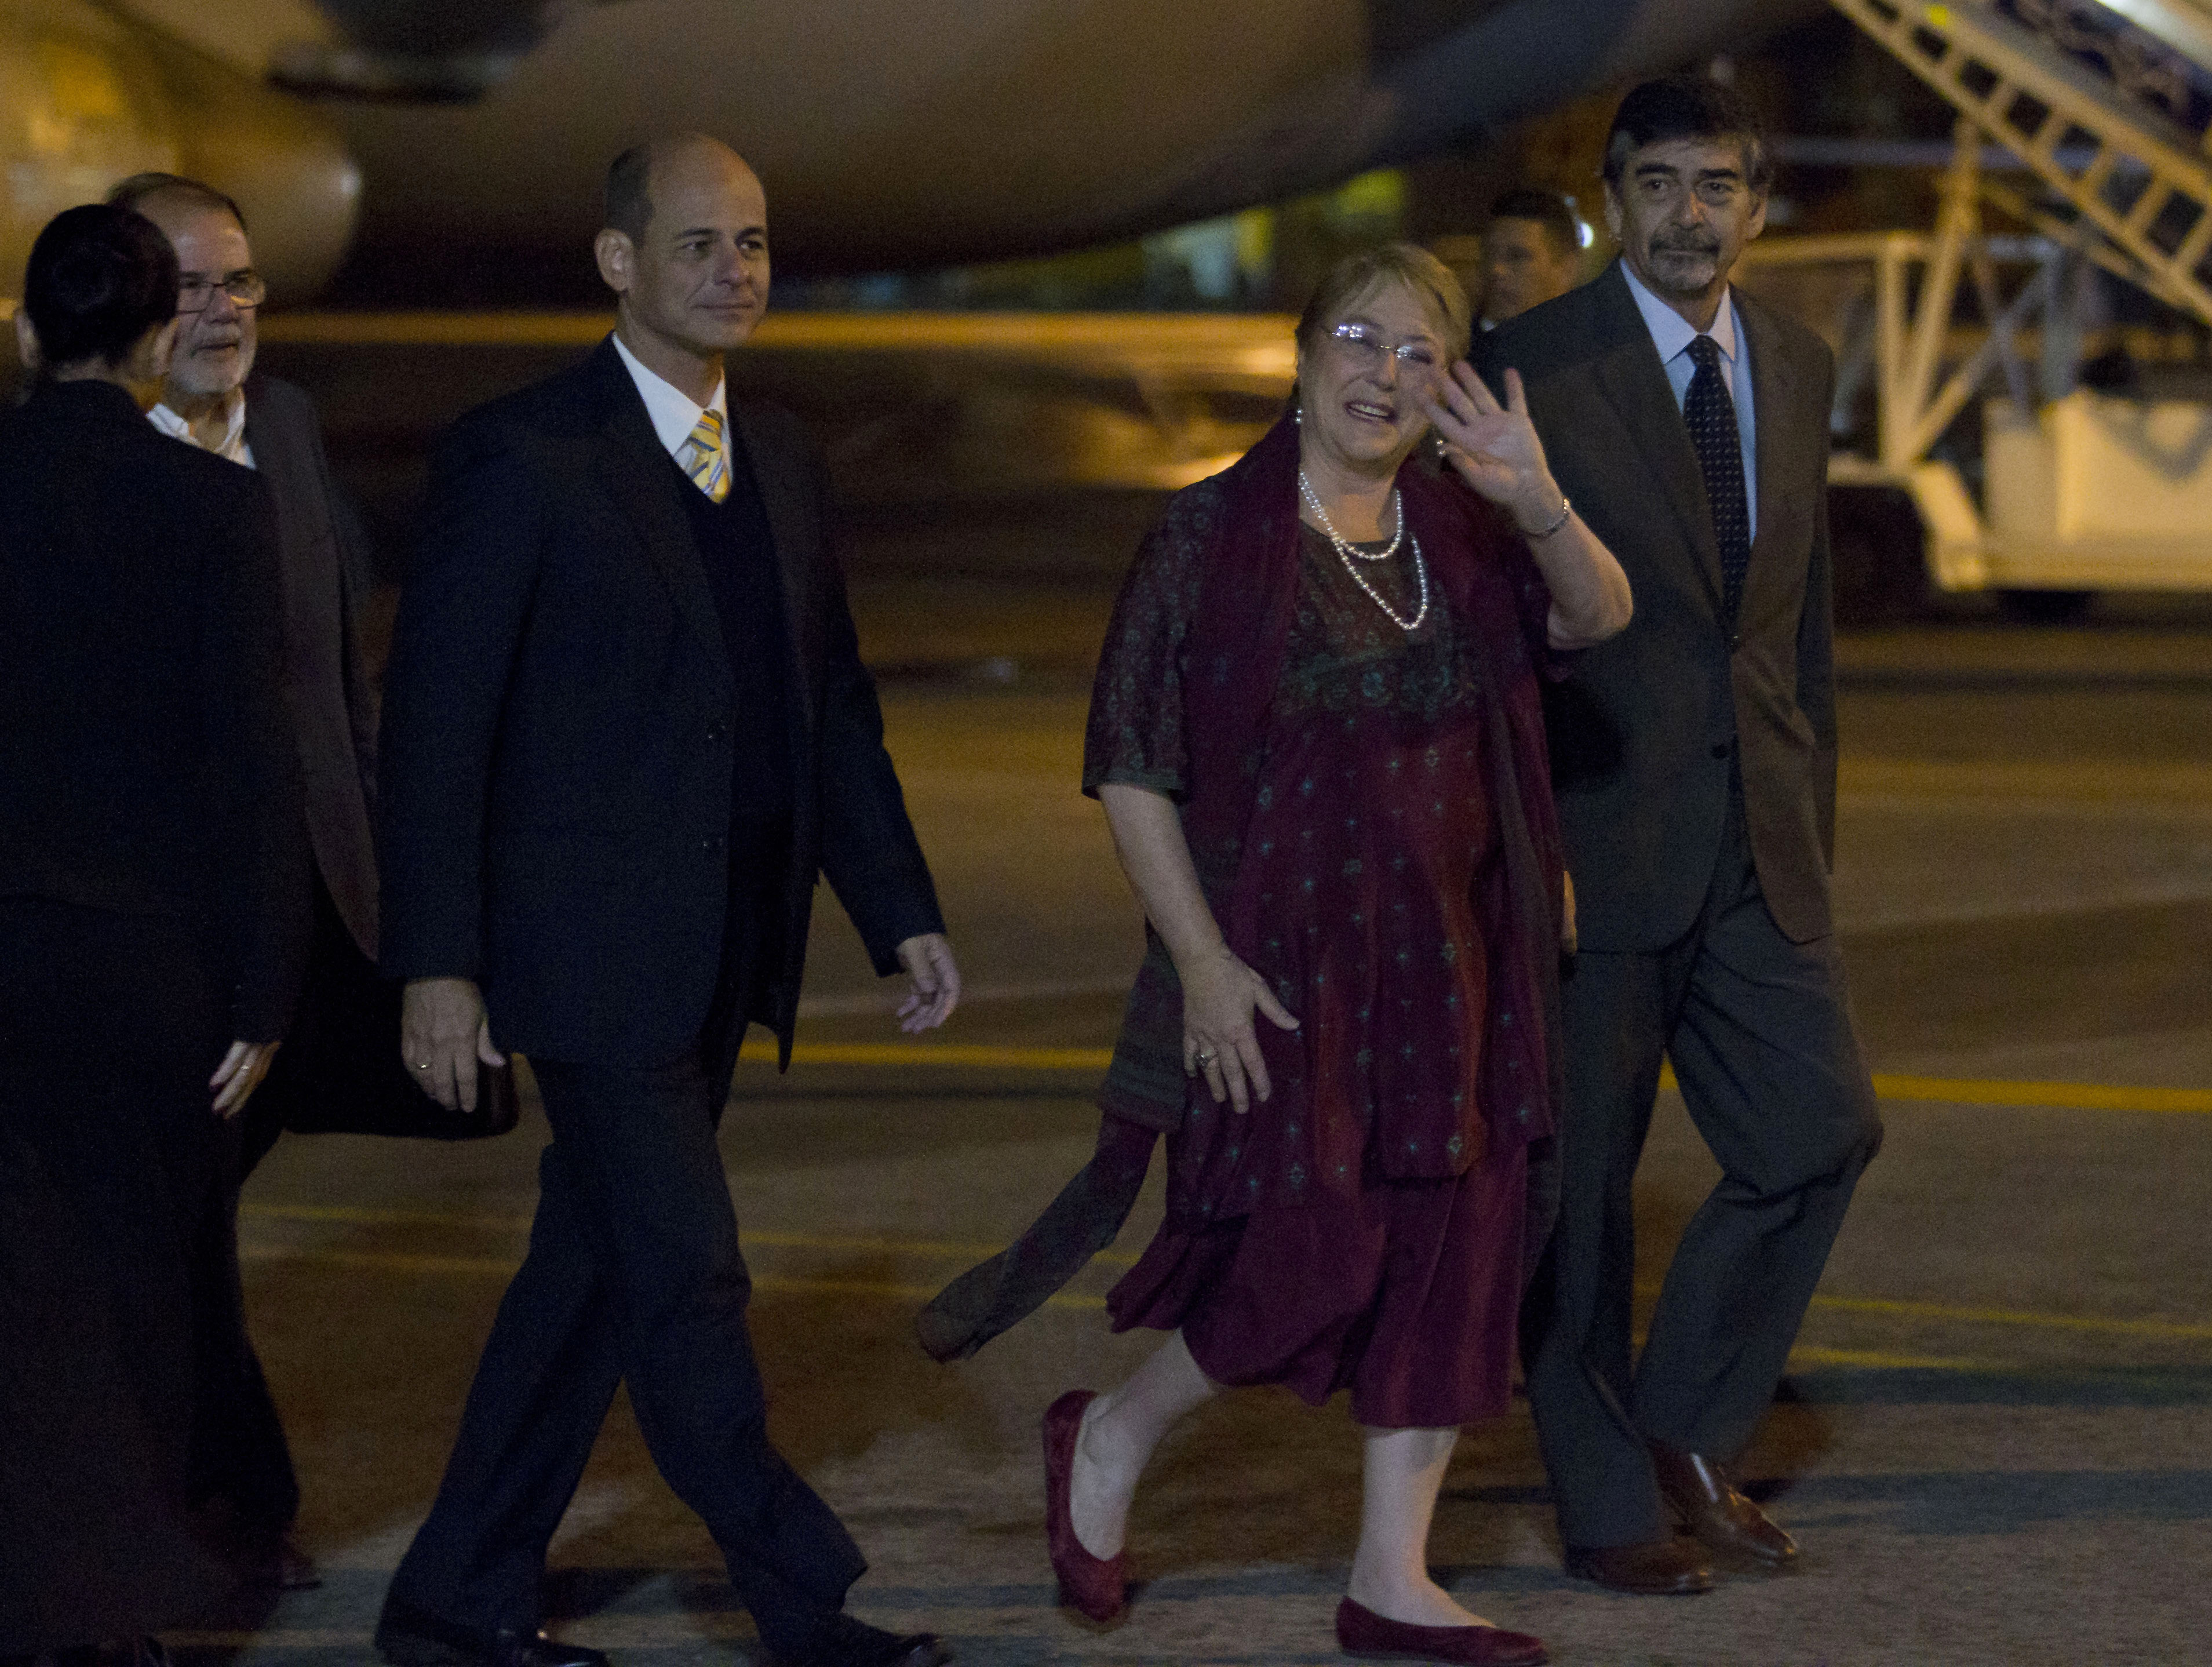 Chilean President Michelle Bachelet (C) waves after arriving at Jose Marti International Airport in Havana, Cuba, on Jan. 7, 2018.